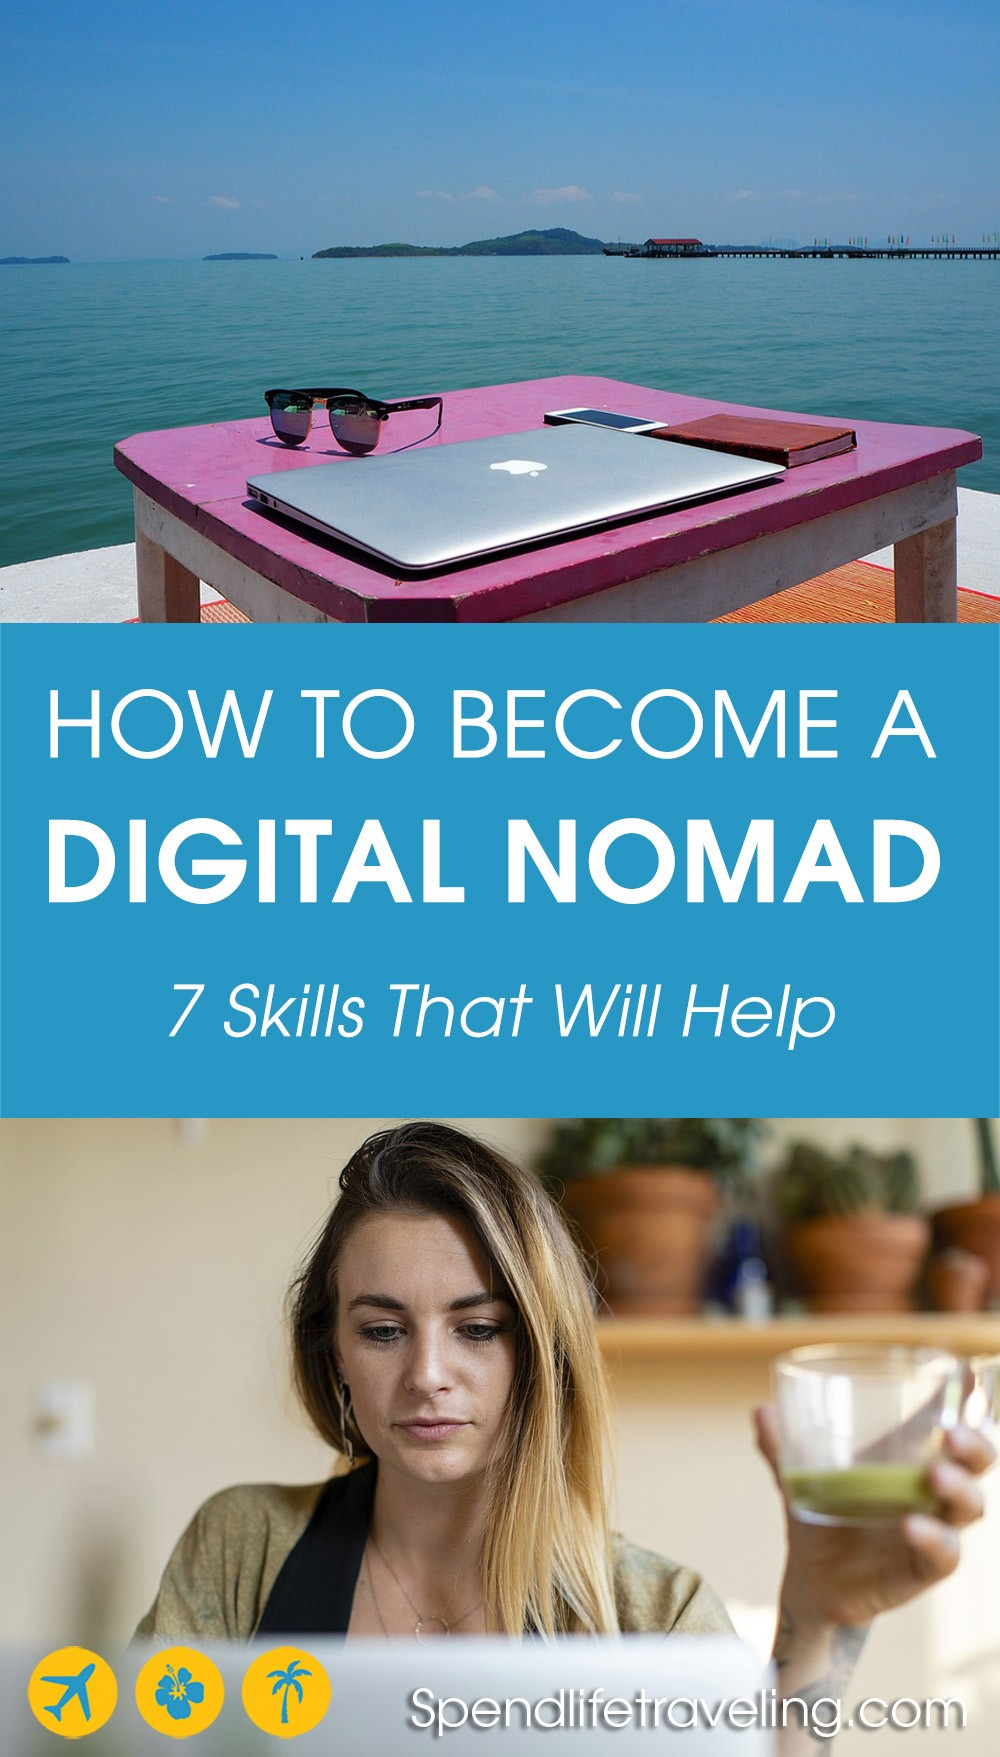 Are you interested in becoming a digital nomad? Check out these honest and practical tips to help you create a location independent lifestyle. #digitalnomad #workremotely #locationindependent